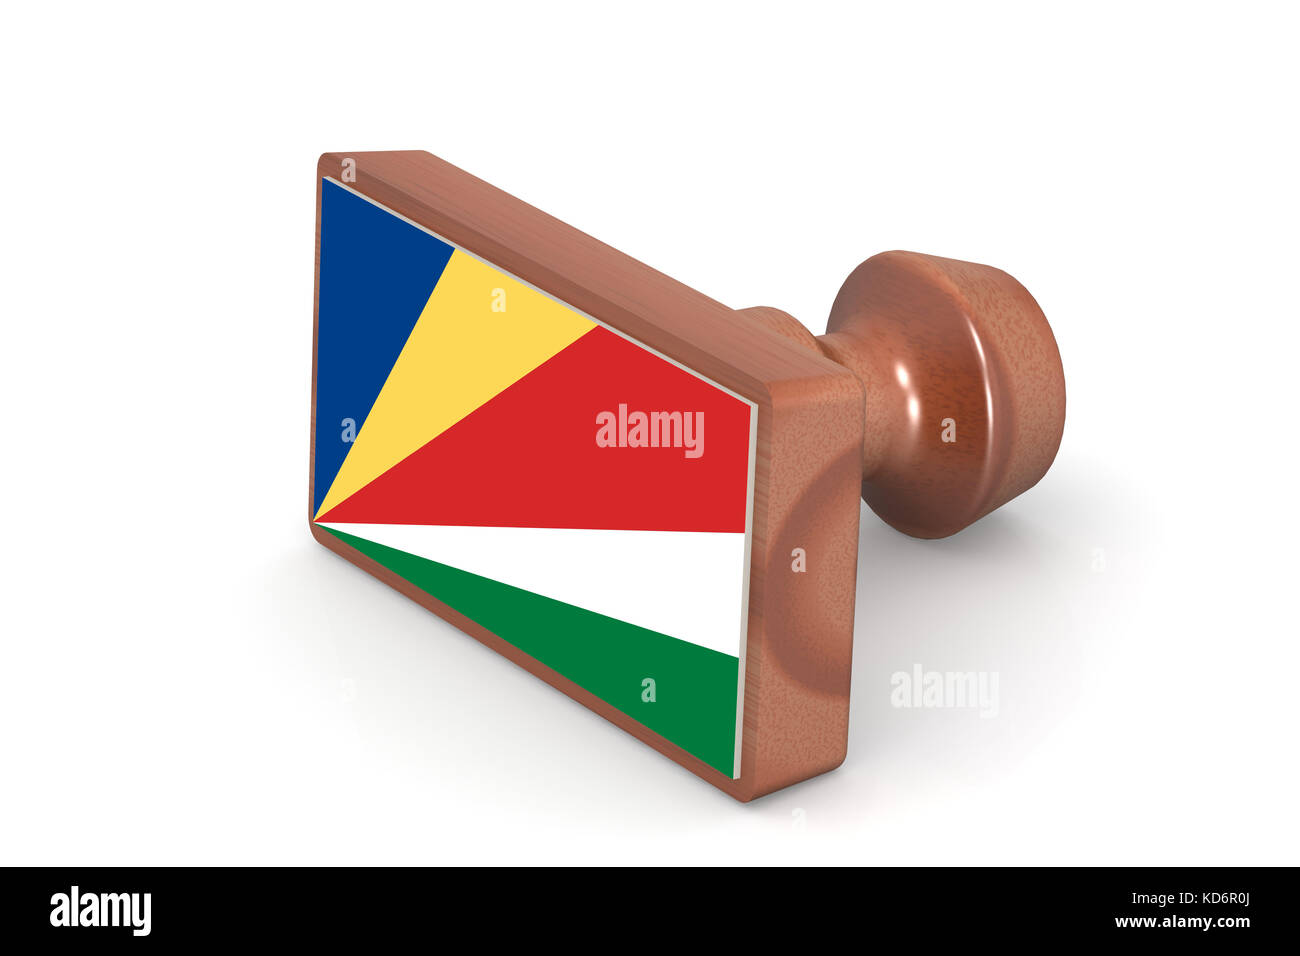 Wooden stamp with Seychelles flag image with hi-res rendered artwork that could be used for any graphic design. - Stock Image